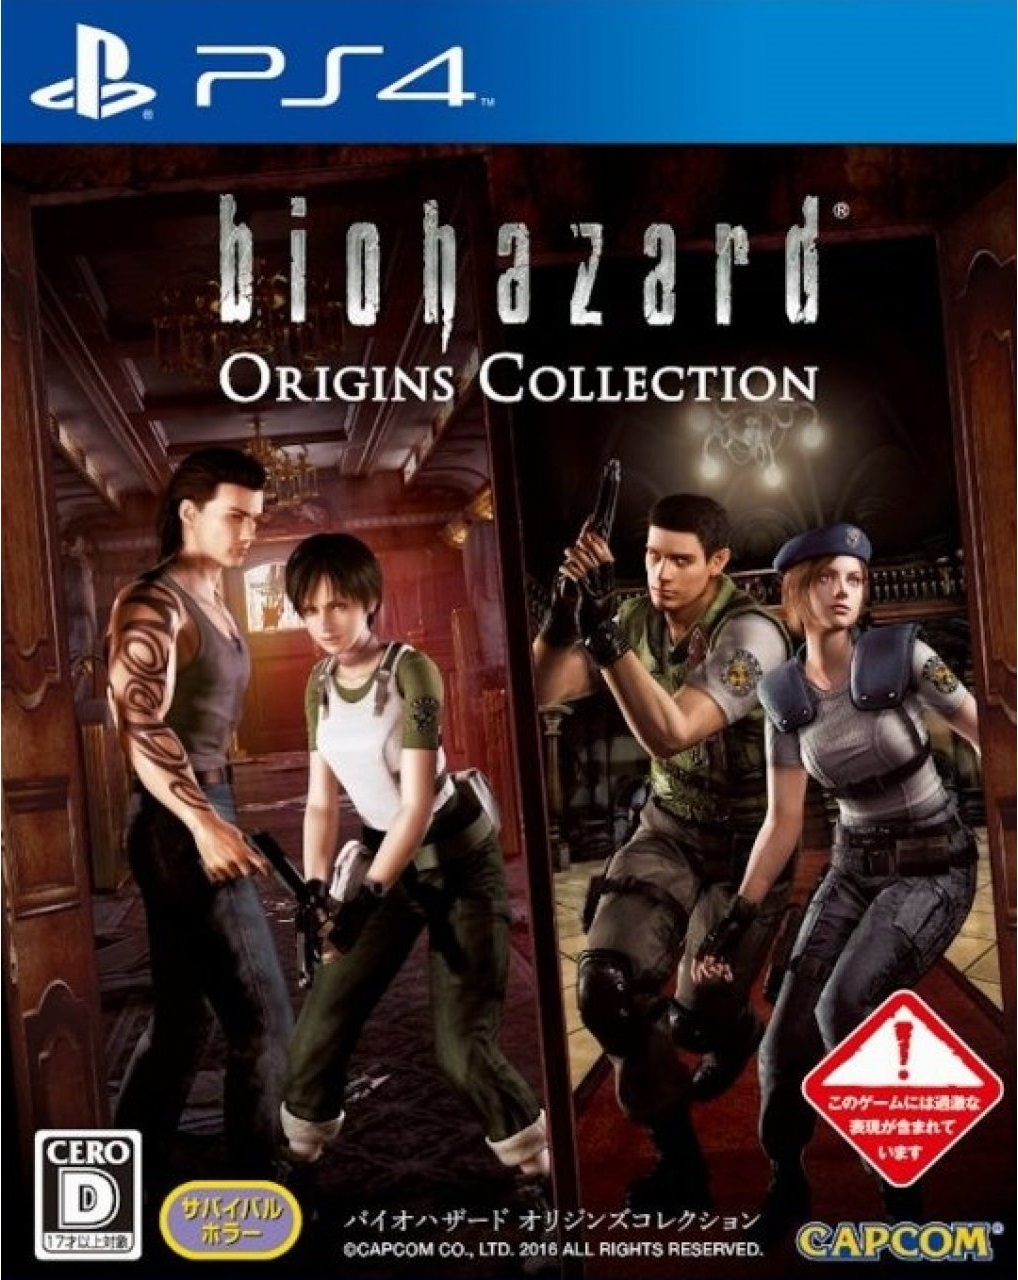 Fichier:Biohazard-origins-collection-ps4.jpg